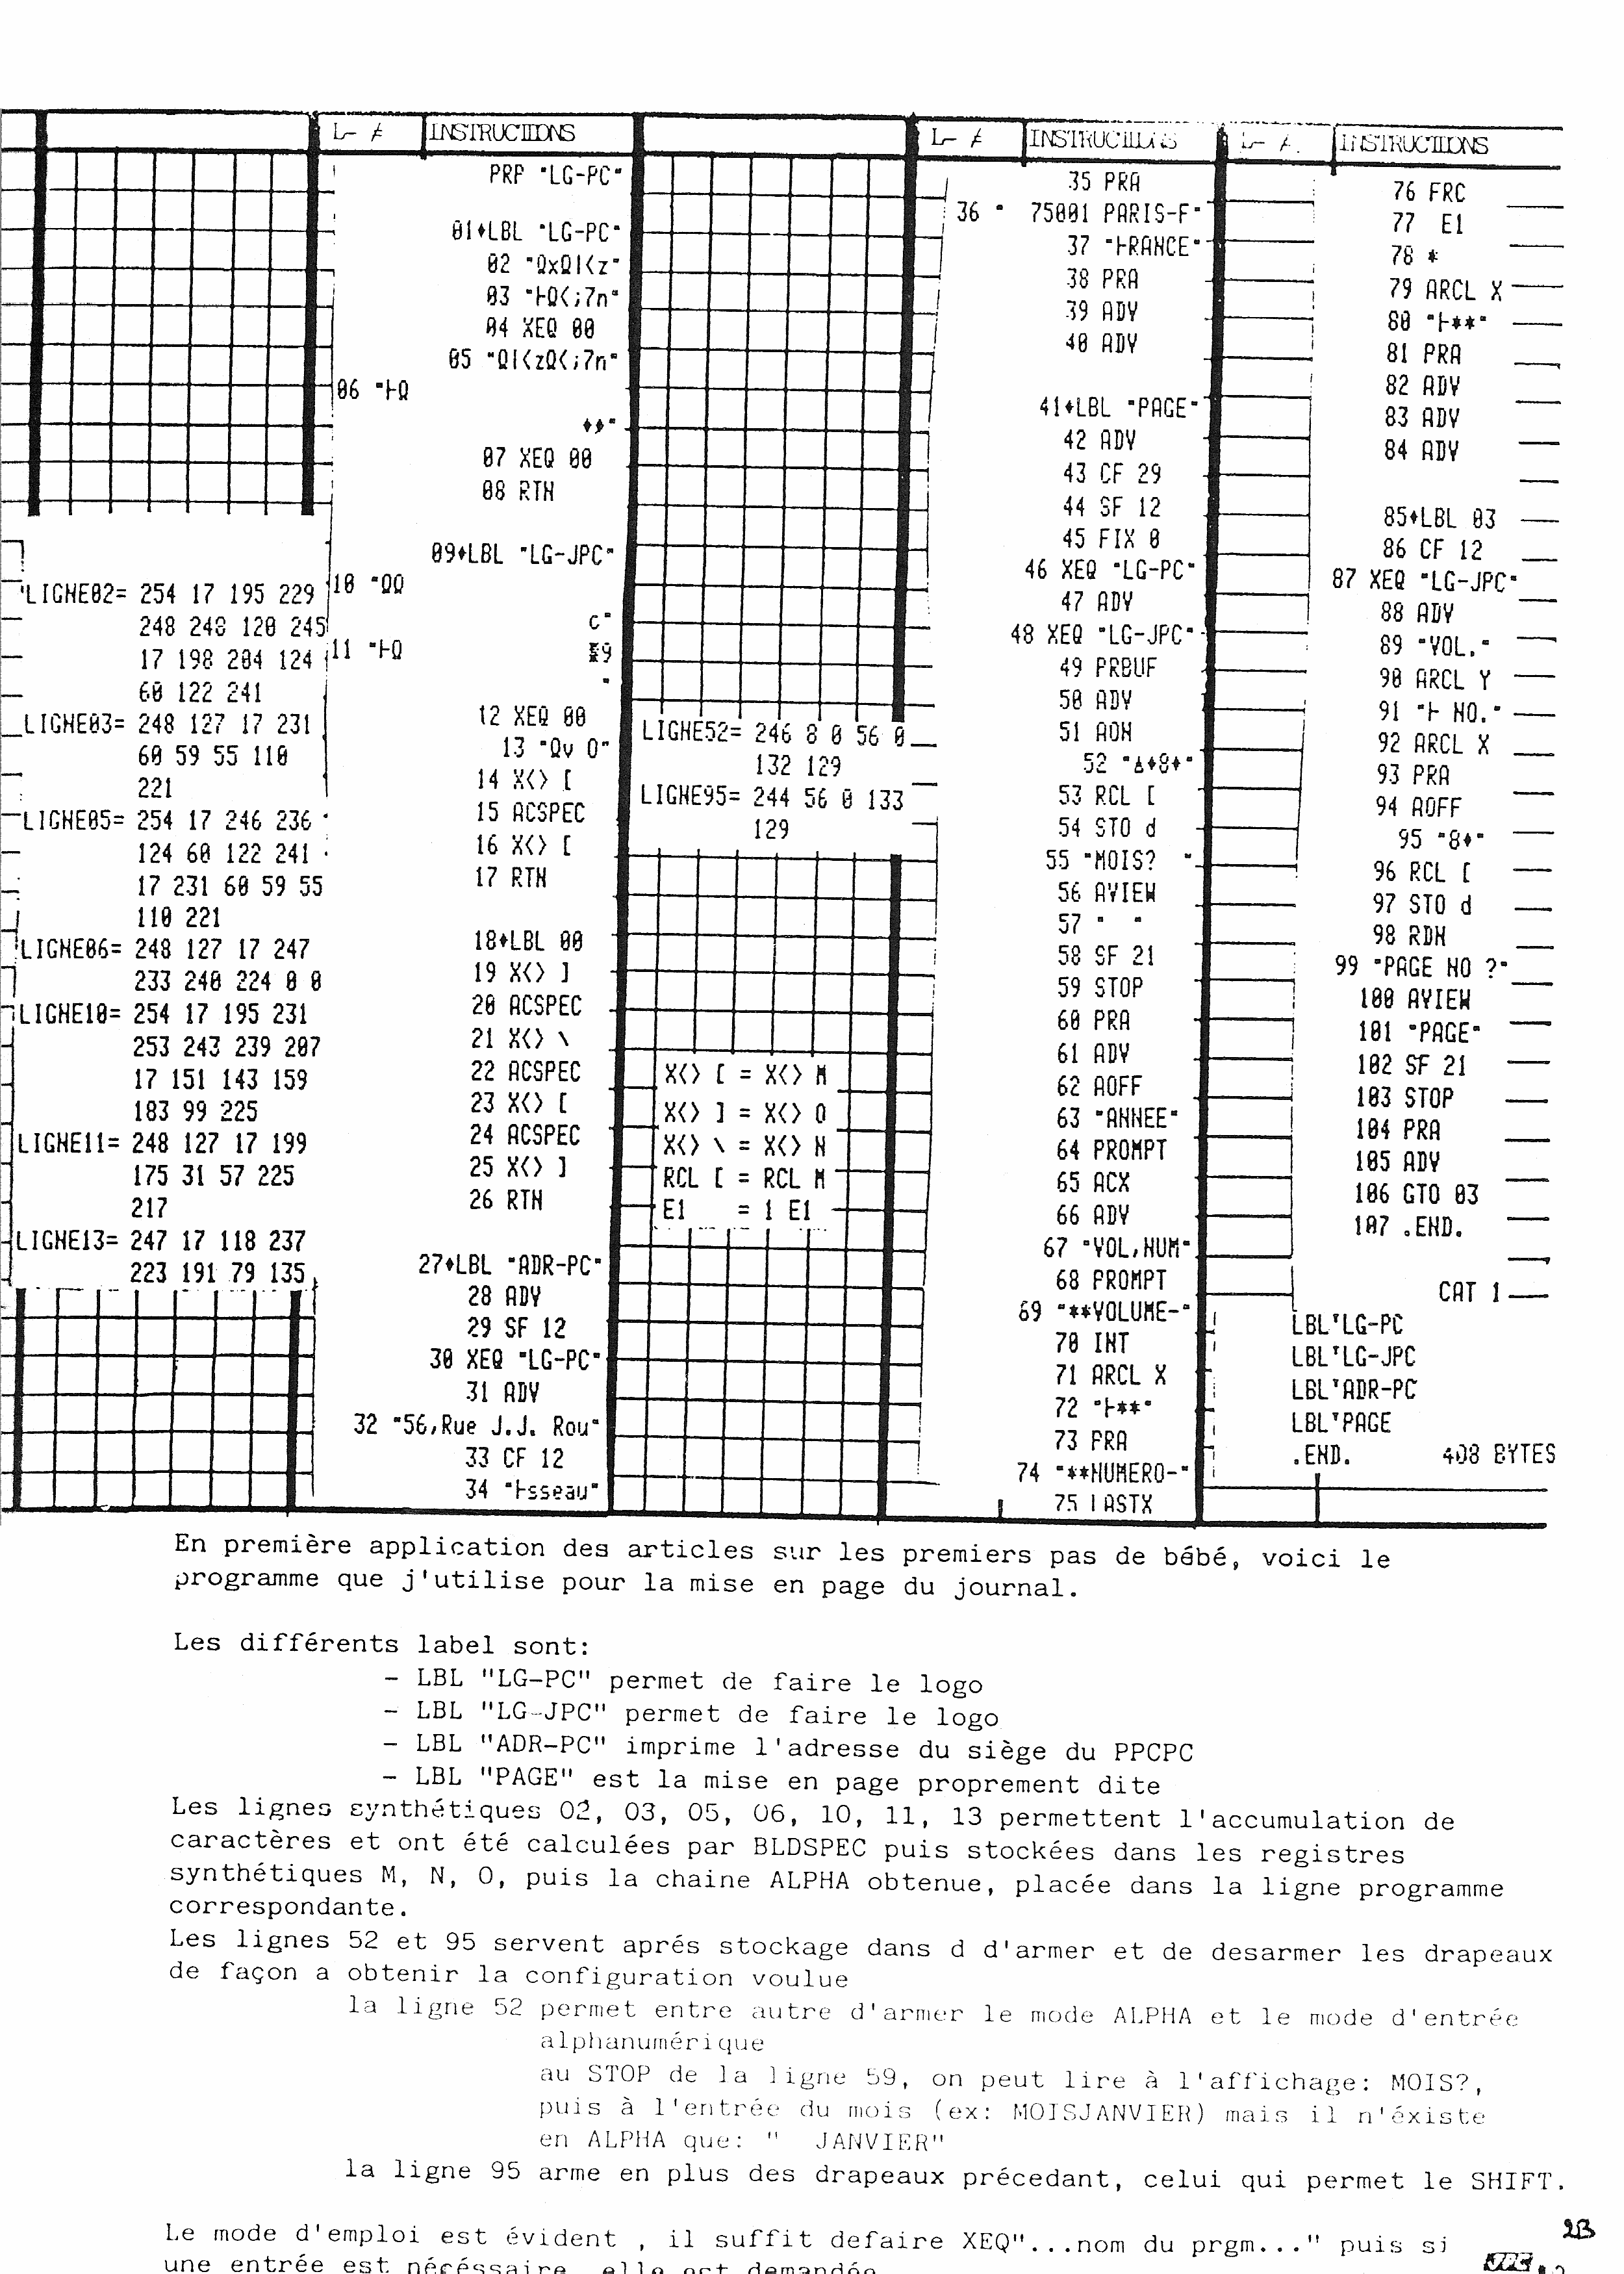 Jp-10-page-23-1000